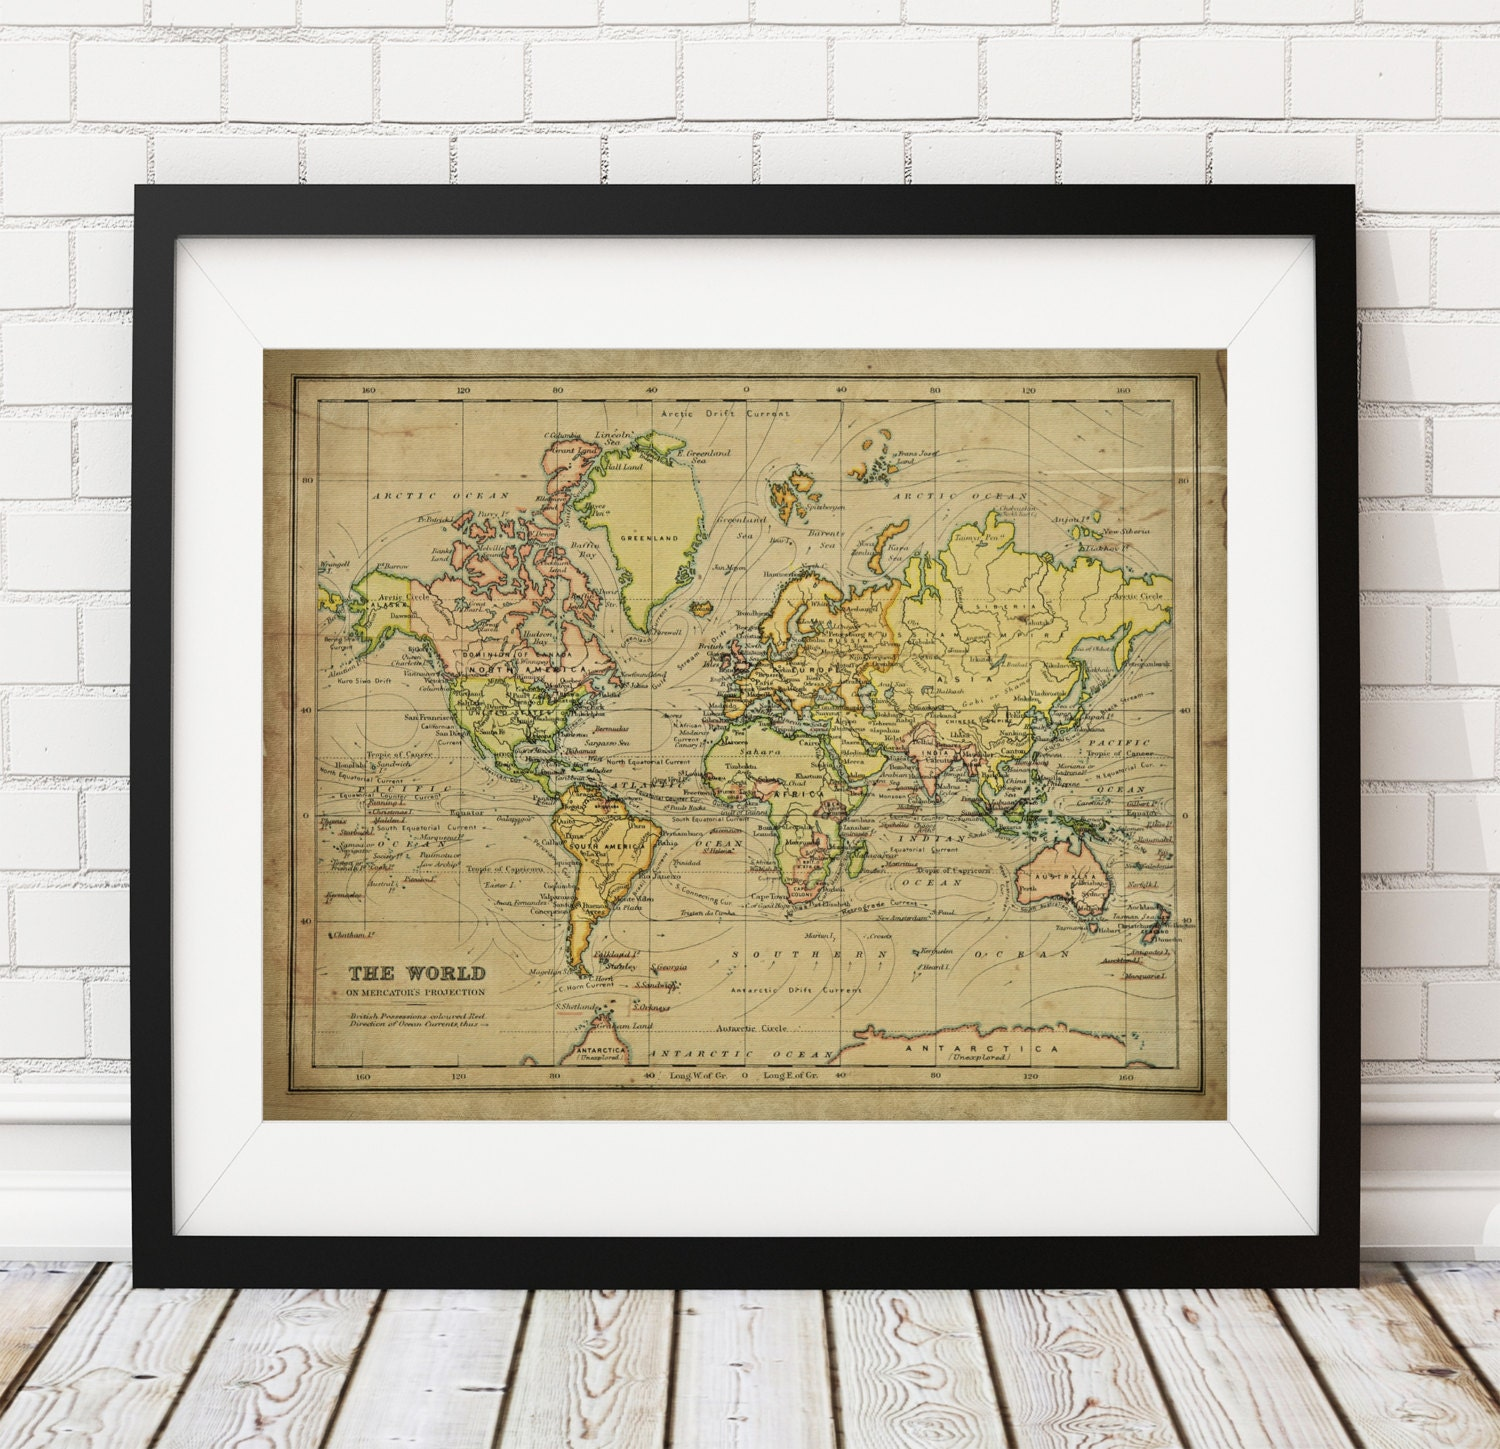 1899 World Map Print, Vintage Map Art, Antique Map Wall Decor ...